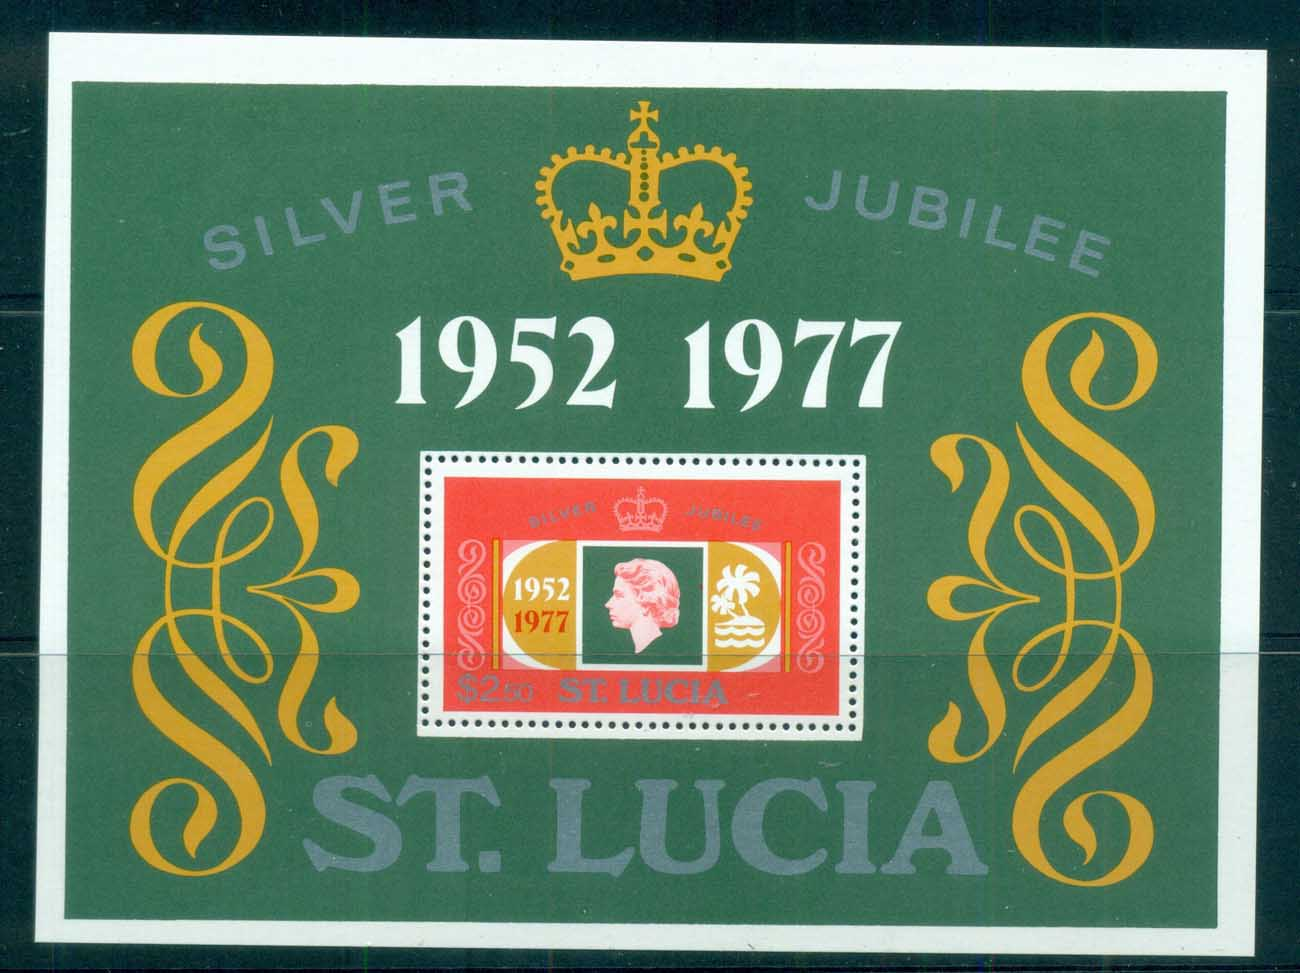 St Lucia 1977 QEII 25th Anniv of Reign MS MS MUH